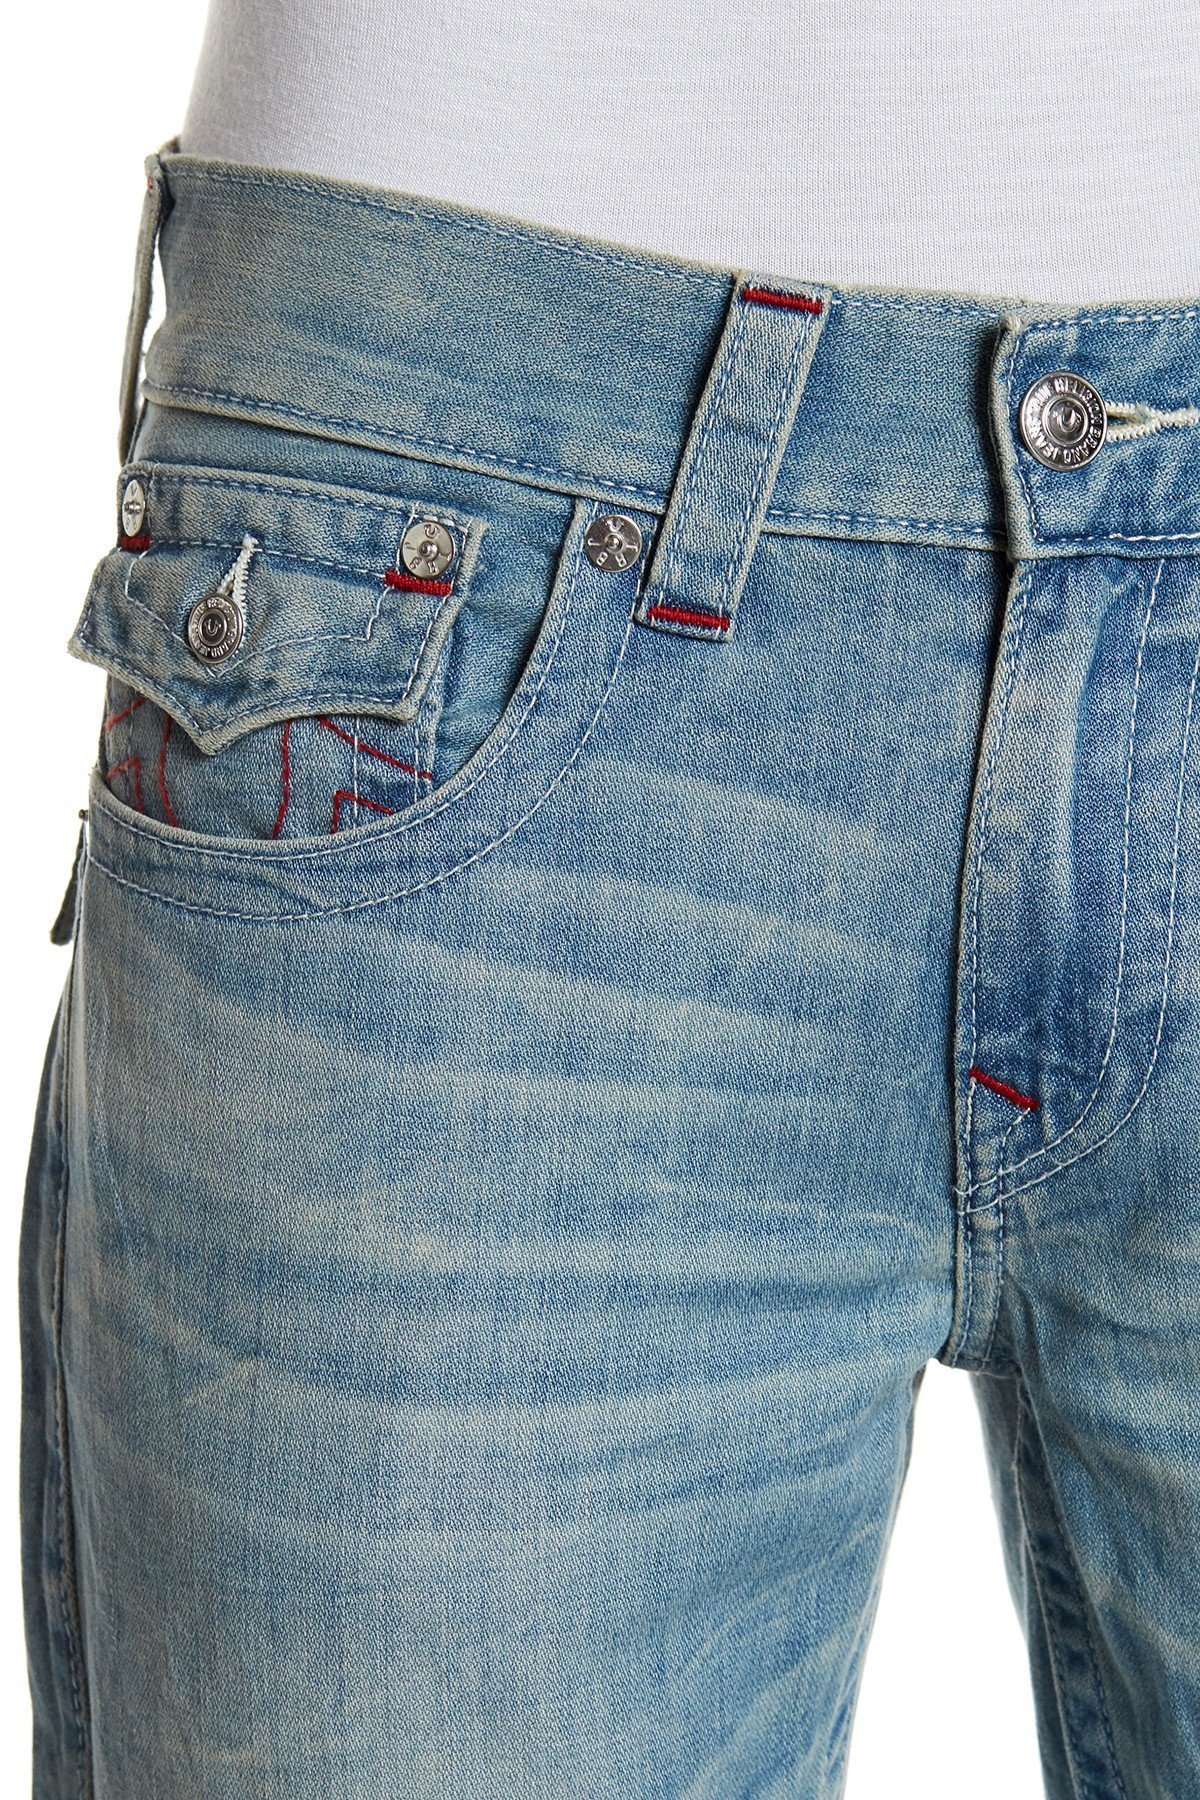 送料・関税込み Straight Leg Flap Pocket Jeans デニム